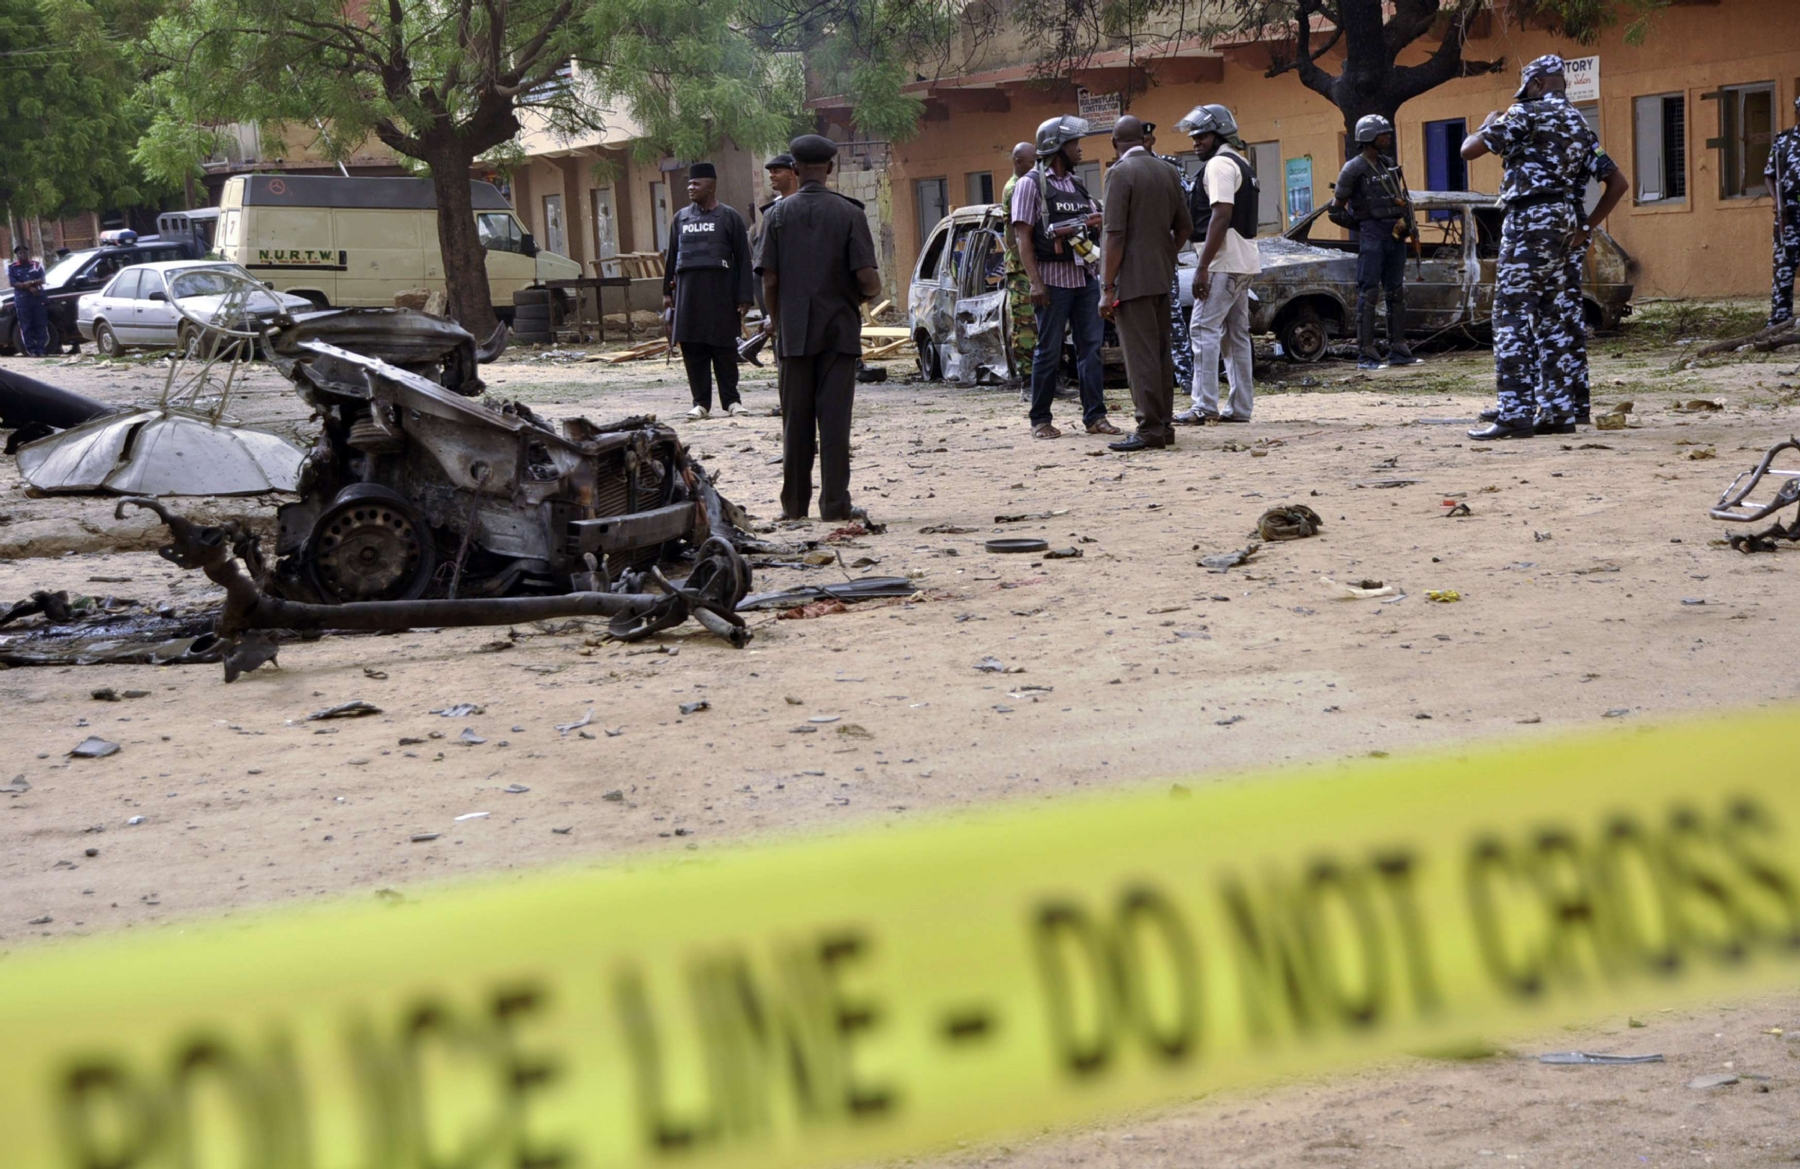 60 killed in double suicide bombing at refugee camp in Nigeria